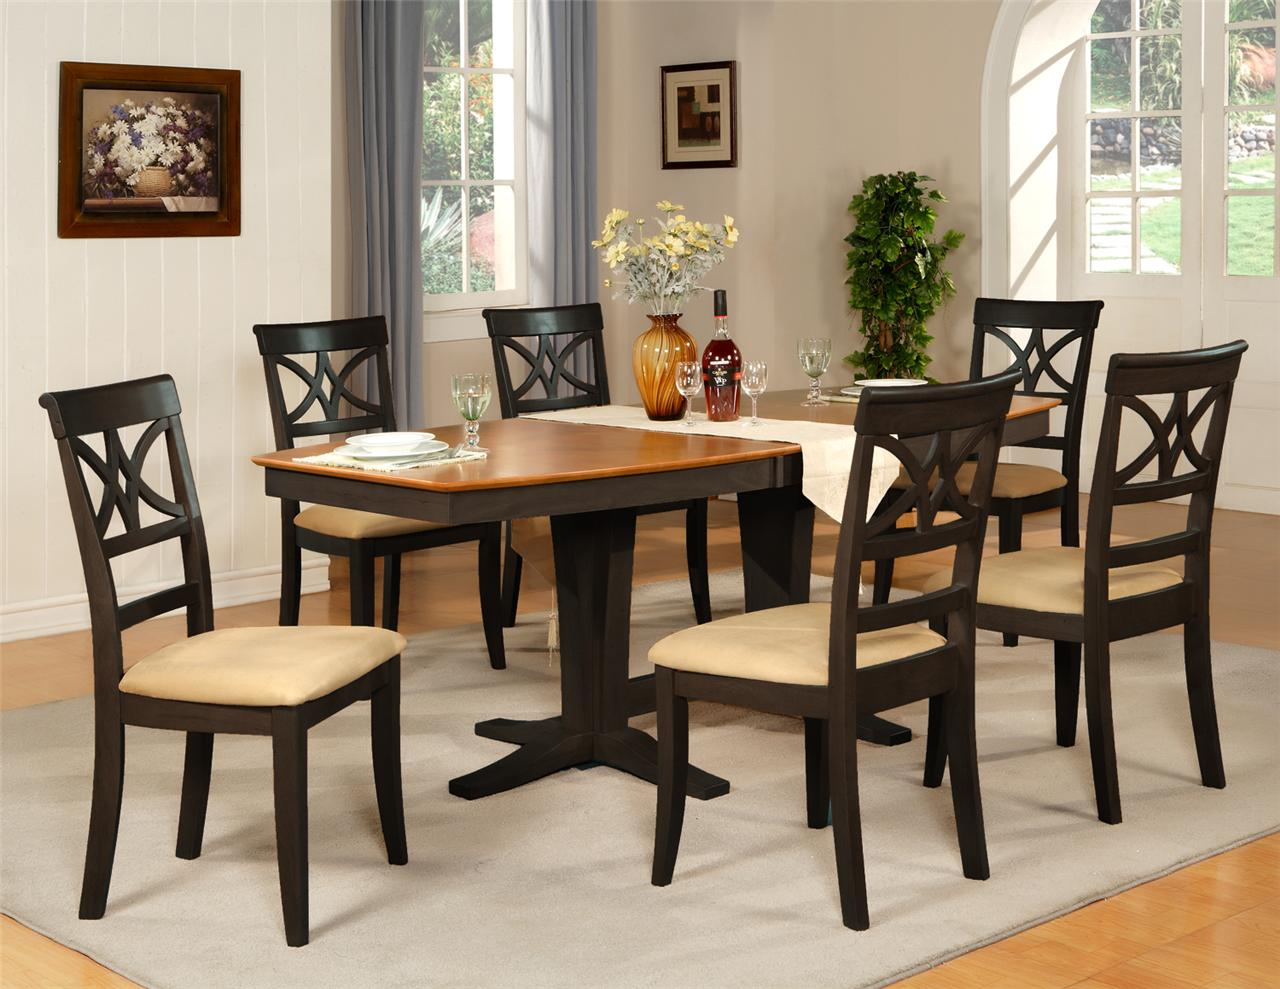 Home Decor dining room table and chairs dining room table w 6 microfiber padded chairs black cherry brown gltbmfp